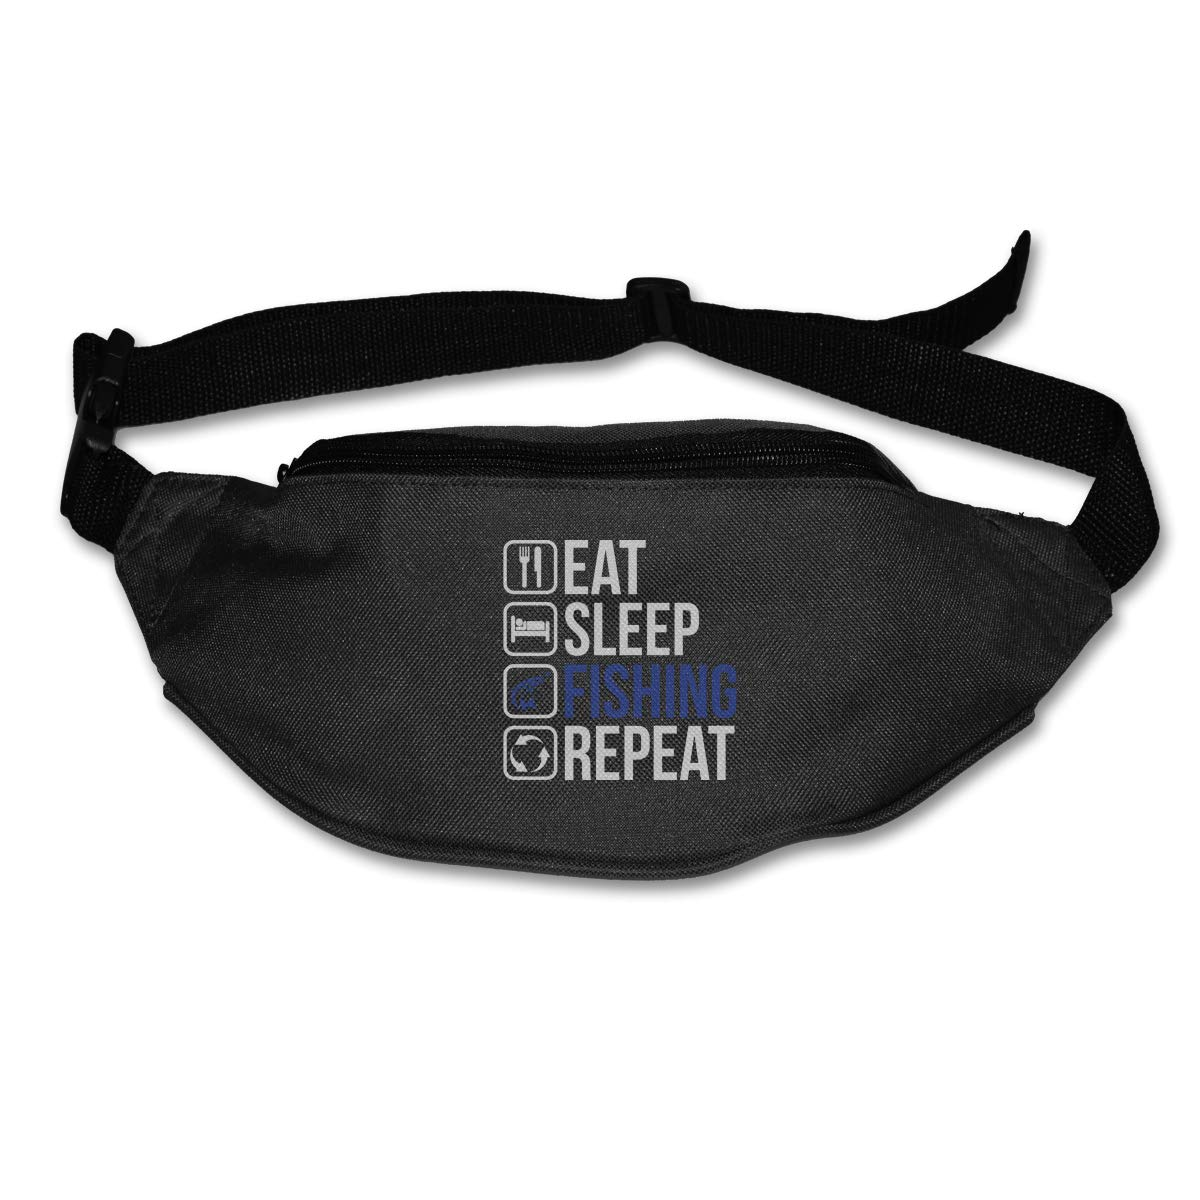 Eat Sleep Fishing Repeat Sport Waist Pack Fanny Pack Adjustable For Travel